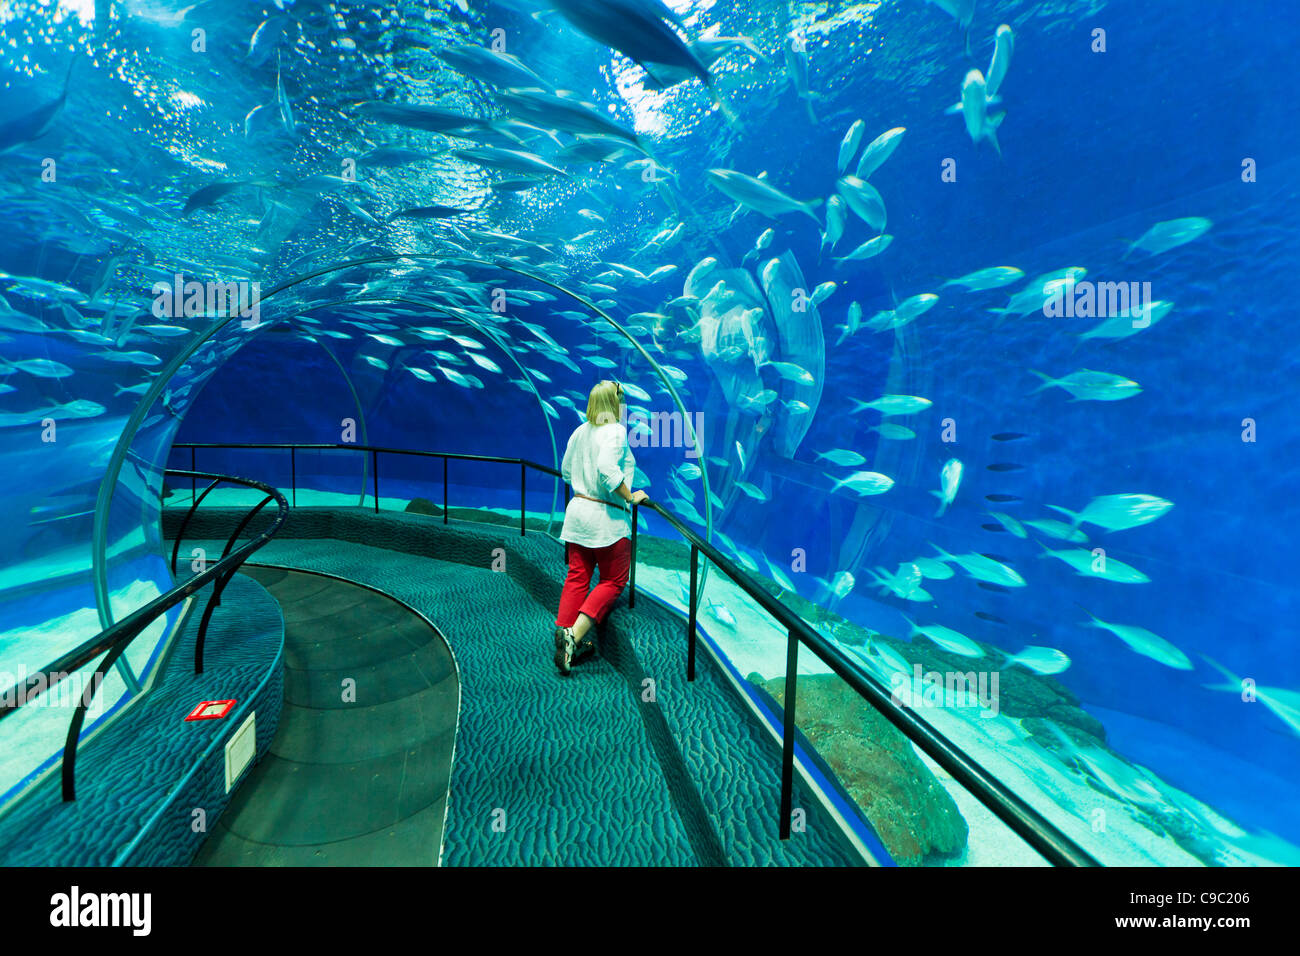 Female tourist at  Shanghai ocean Aquarium, Peoples Republic of China, PRC, Asia - Stock Image